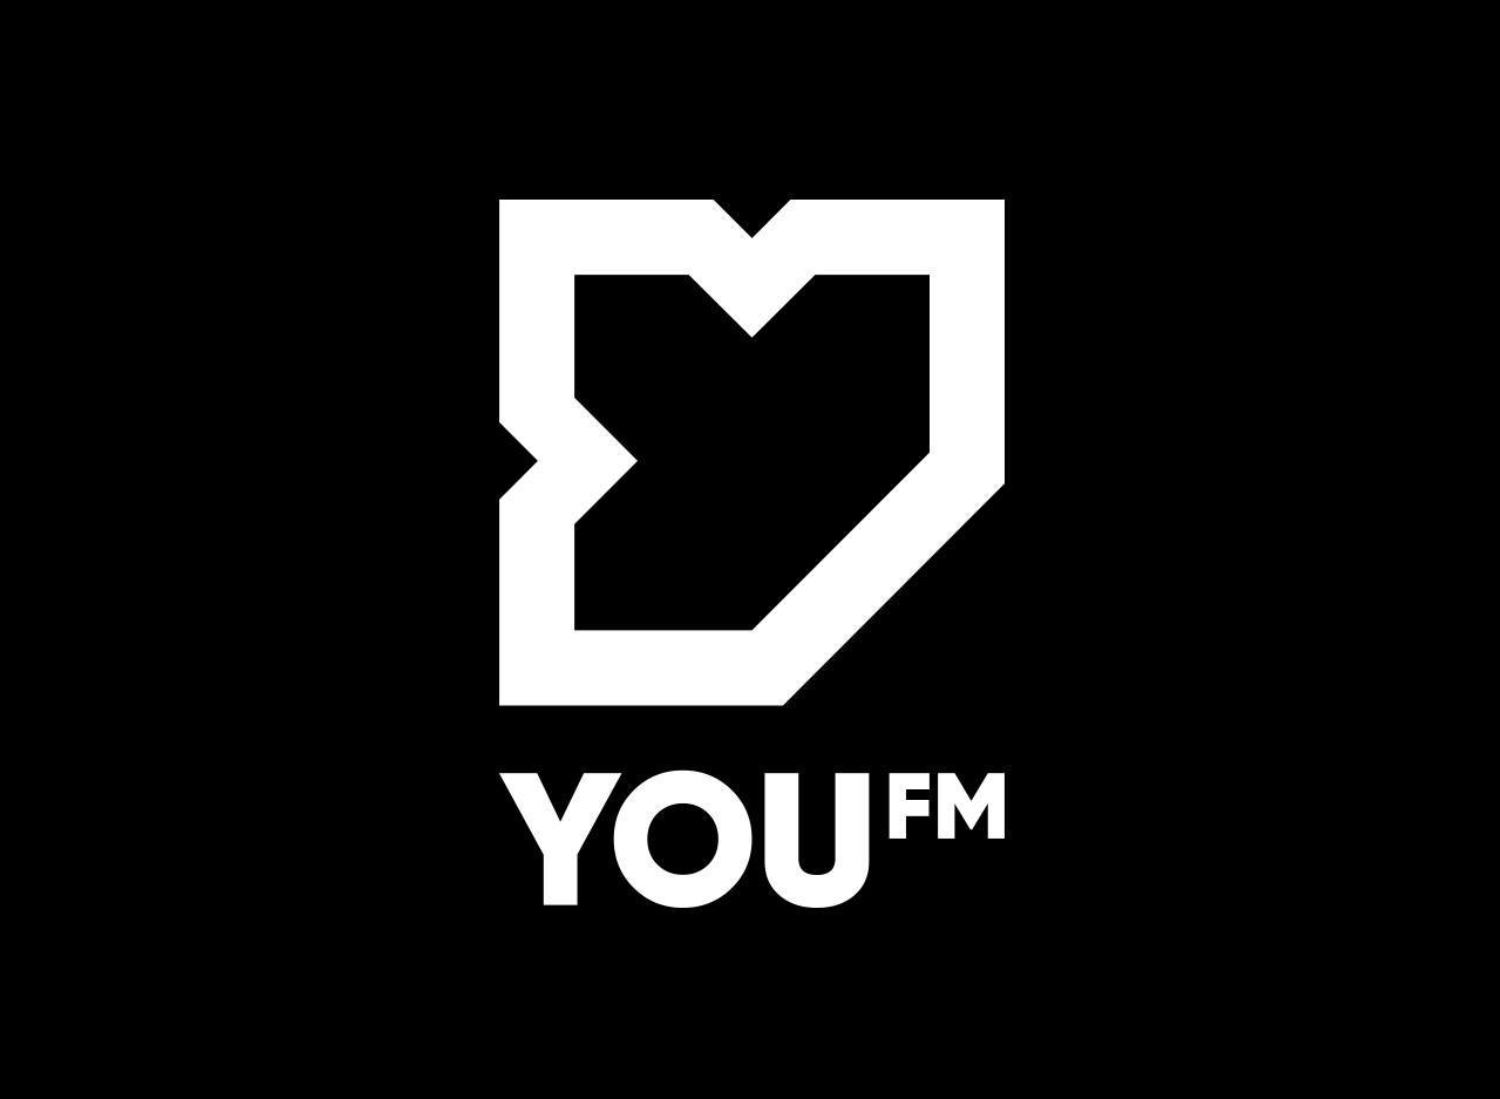 You FM Logo, Quelle: You FM